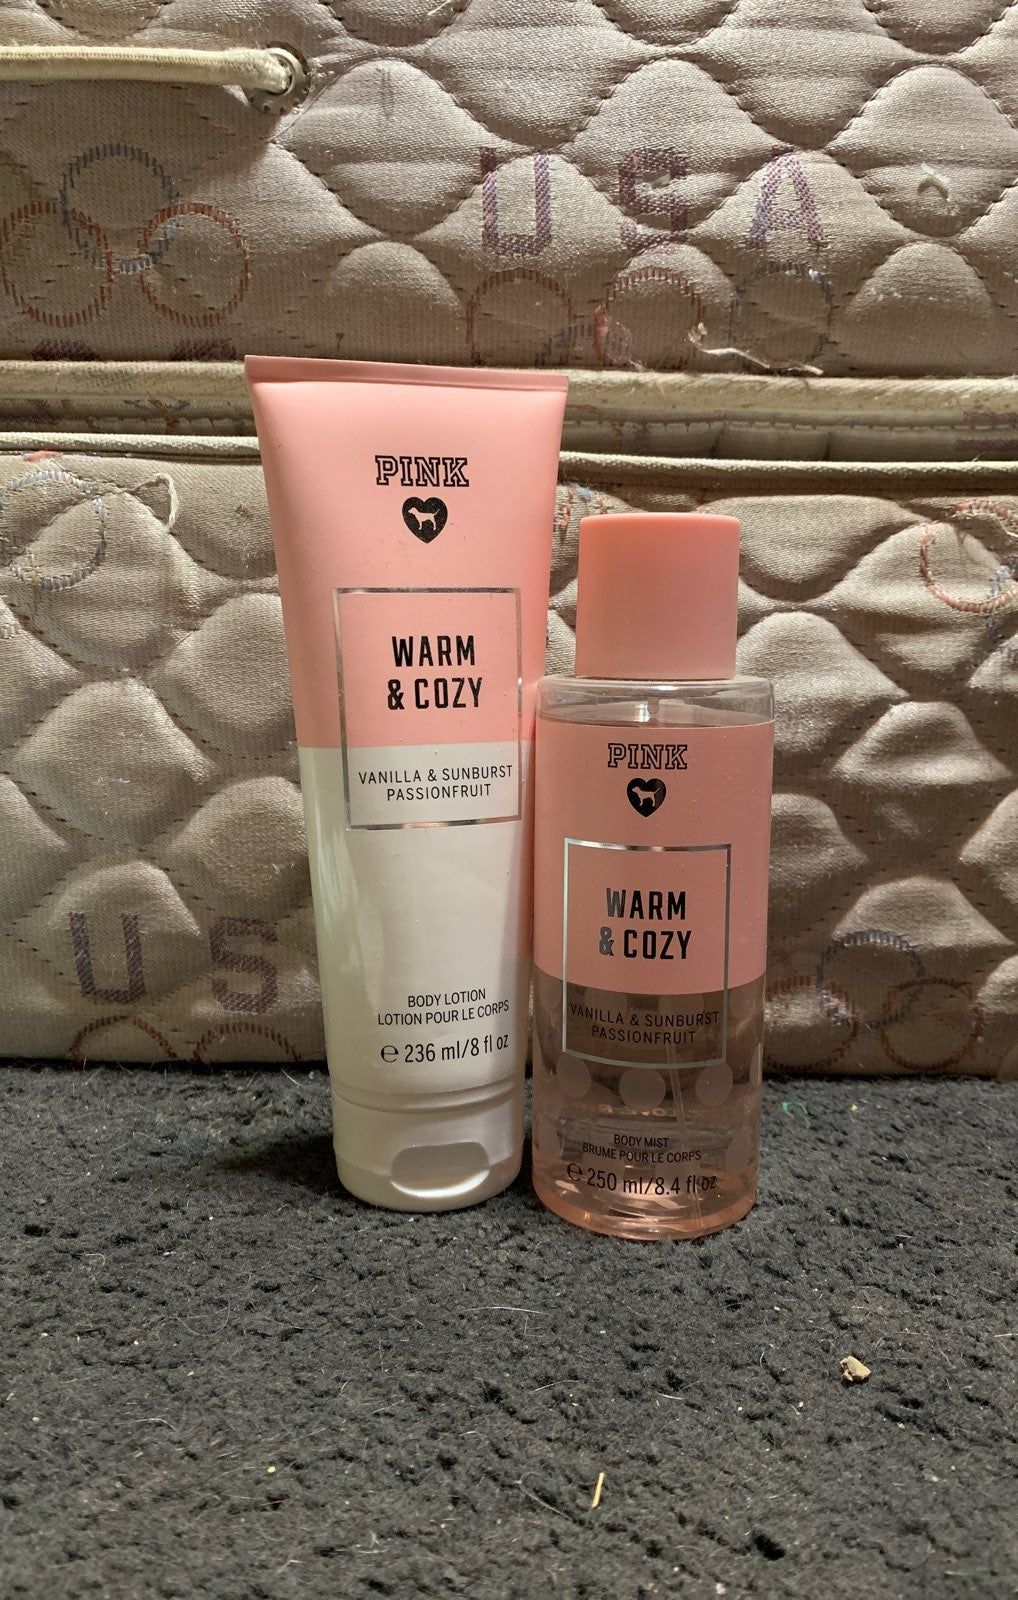 Victoria Secret Pink Fragrance And Lotion In Warm And Cozy A Vanilla Sunburst Pass Pink Fragrance Bath And Body Works Perfume Victoria Secret Pink Fragrance